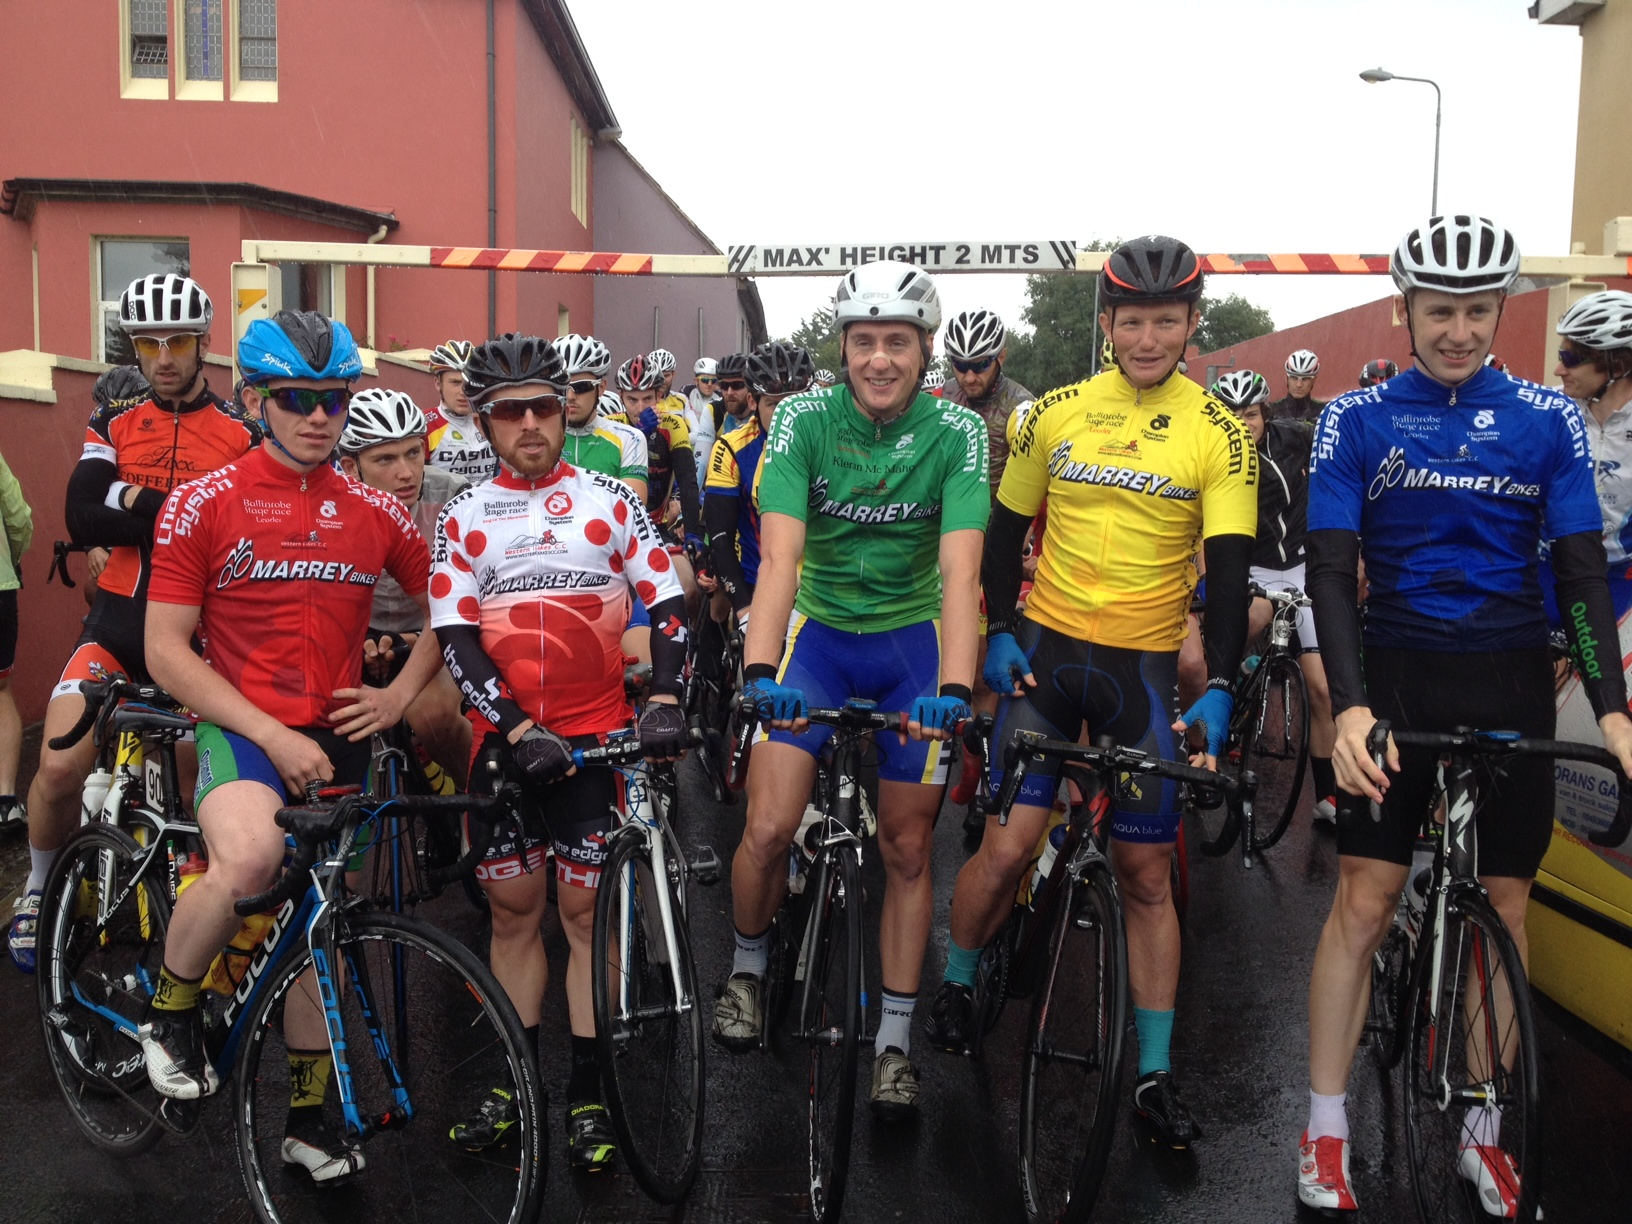 Jersey holders after 2 stages 2014